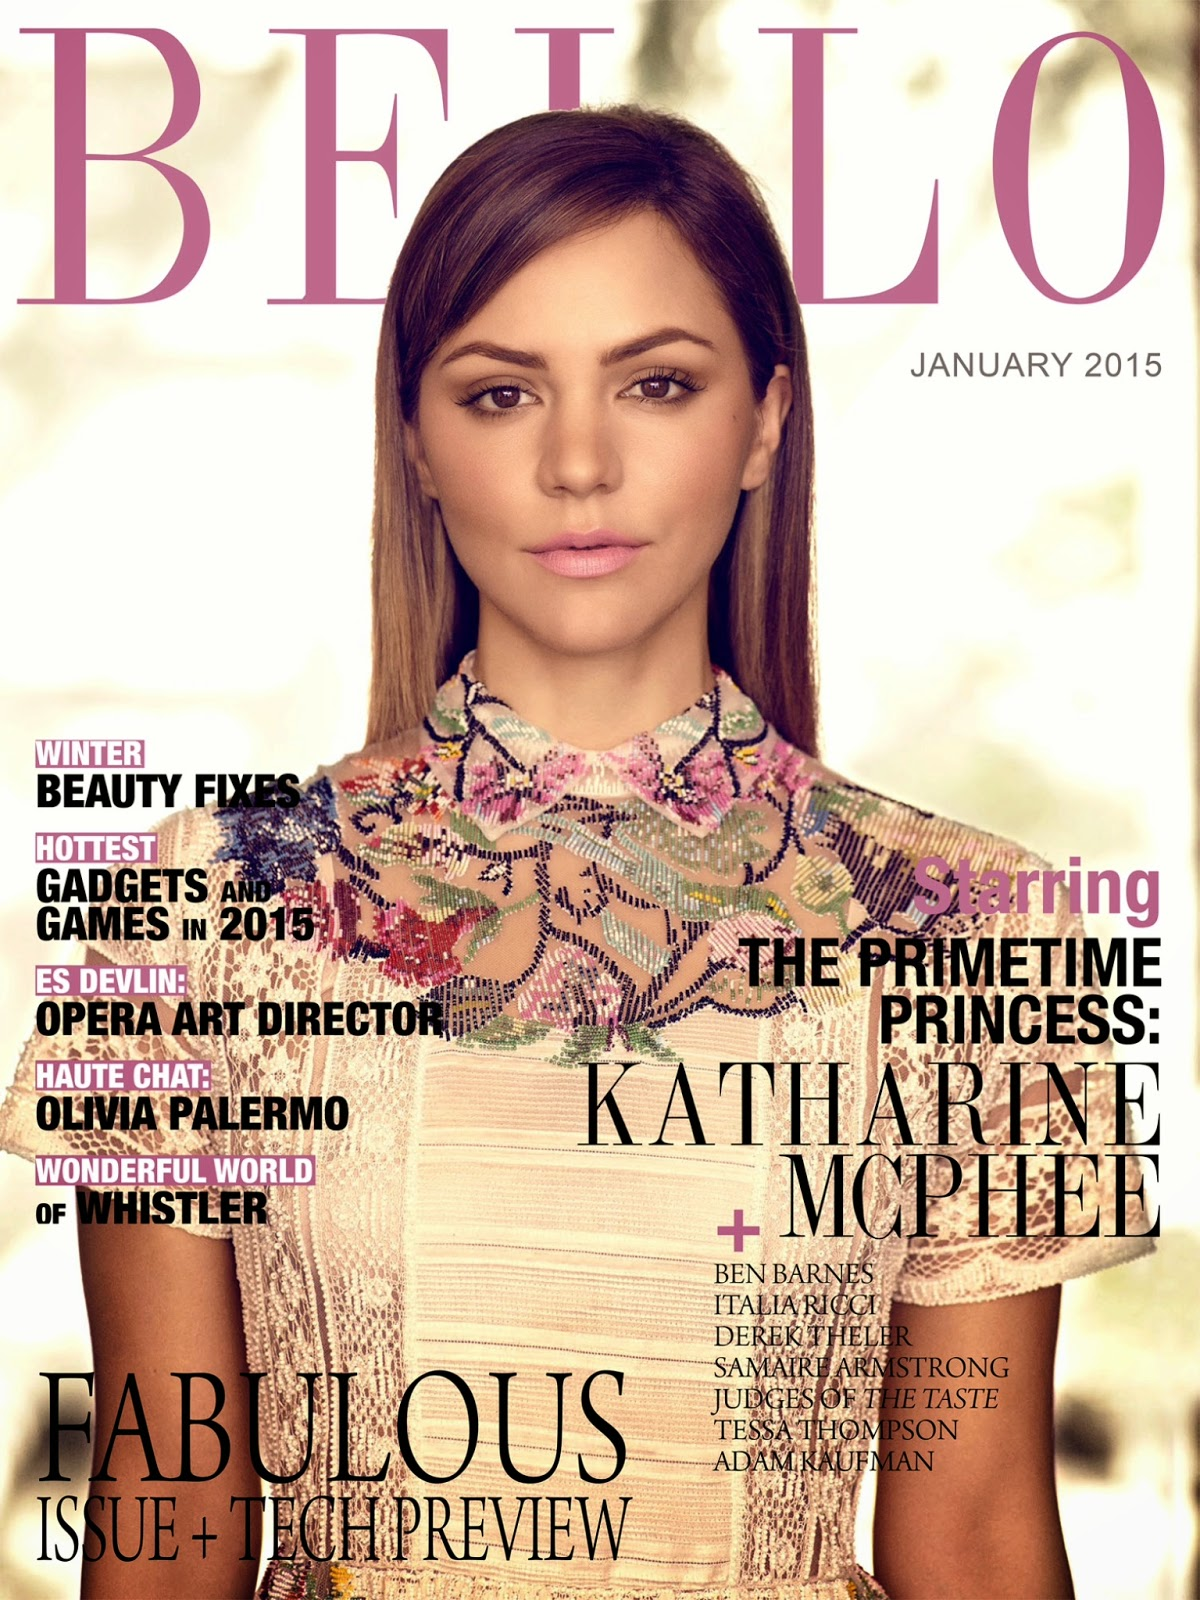 Katharine McPhee - Bello Magazine, January 2015